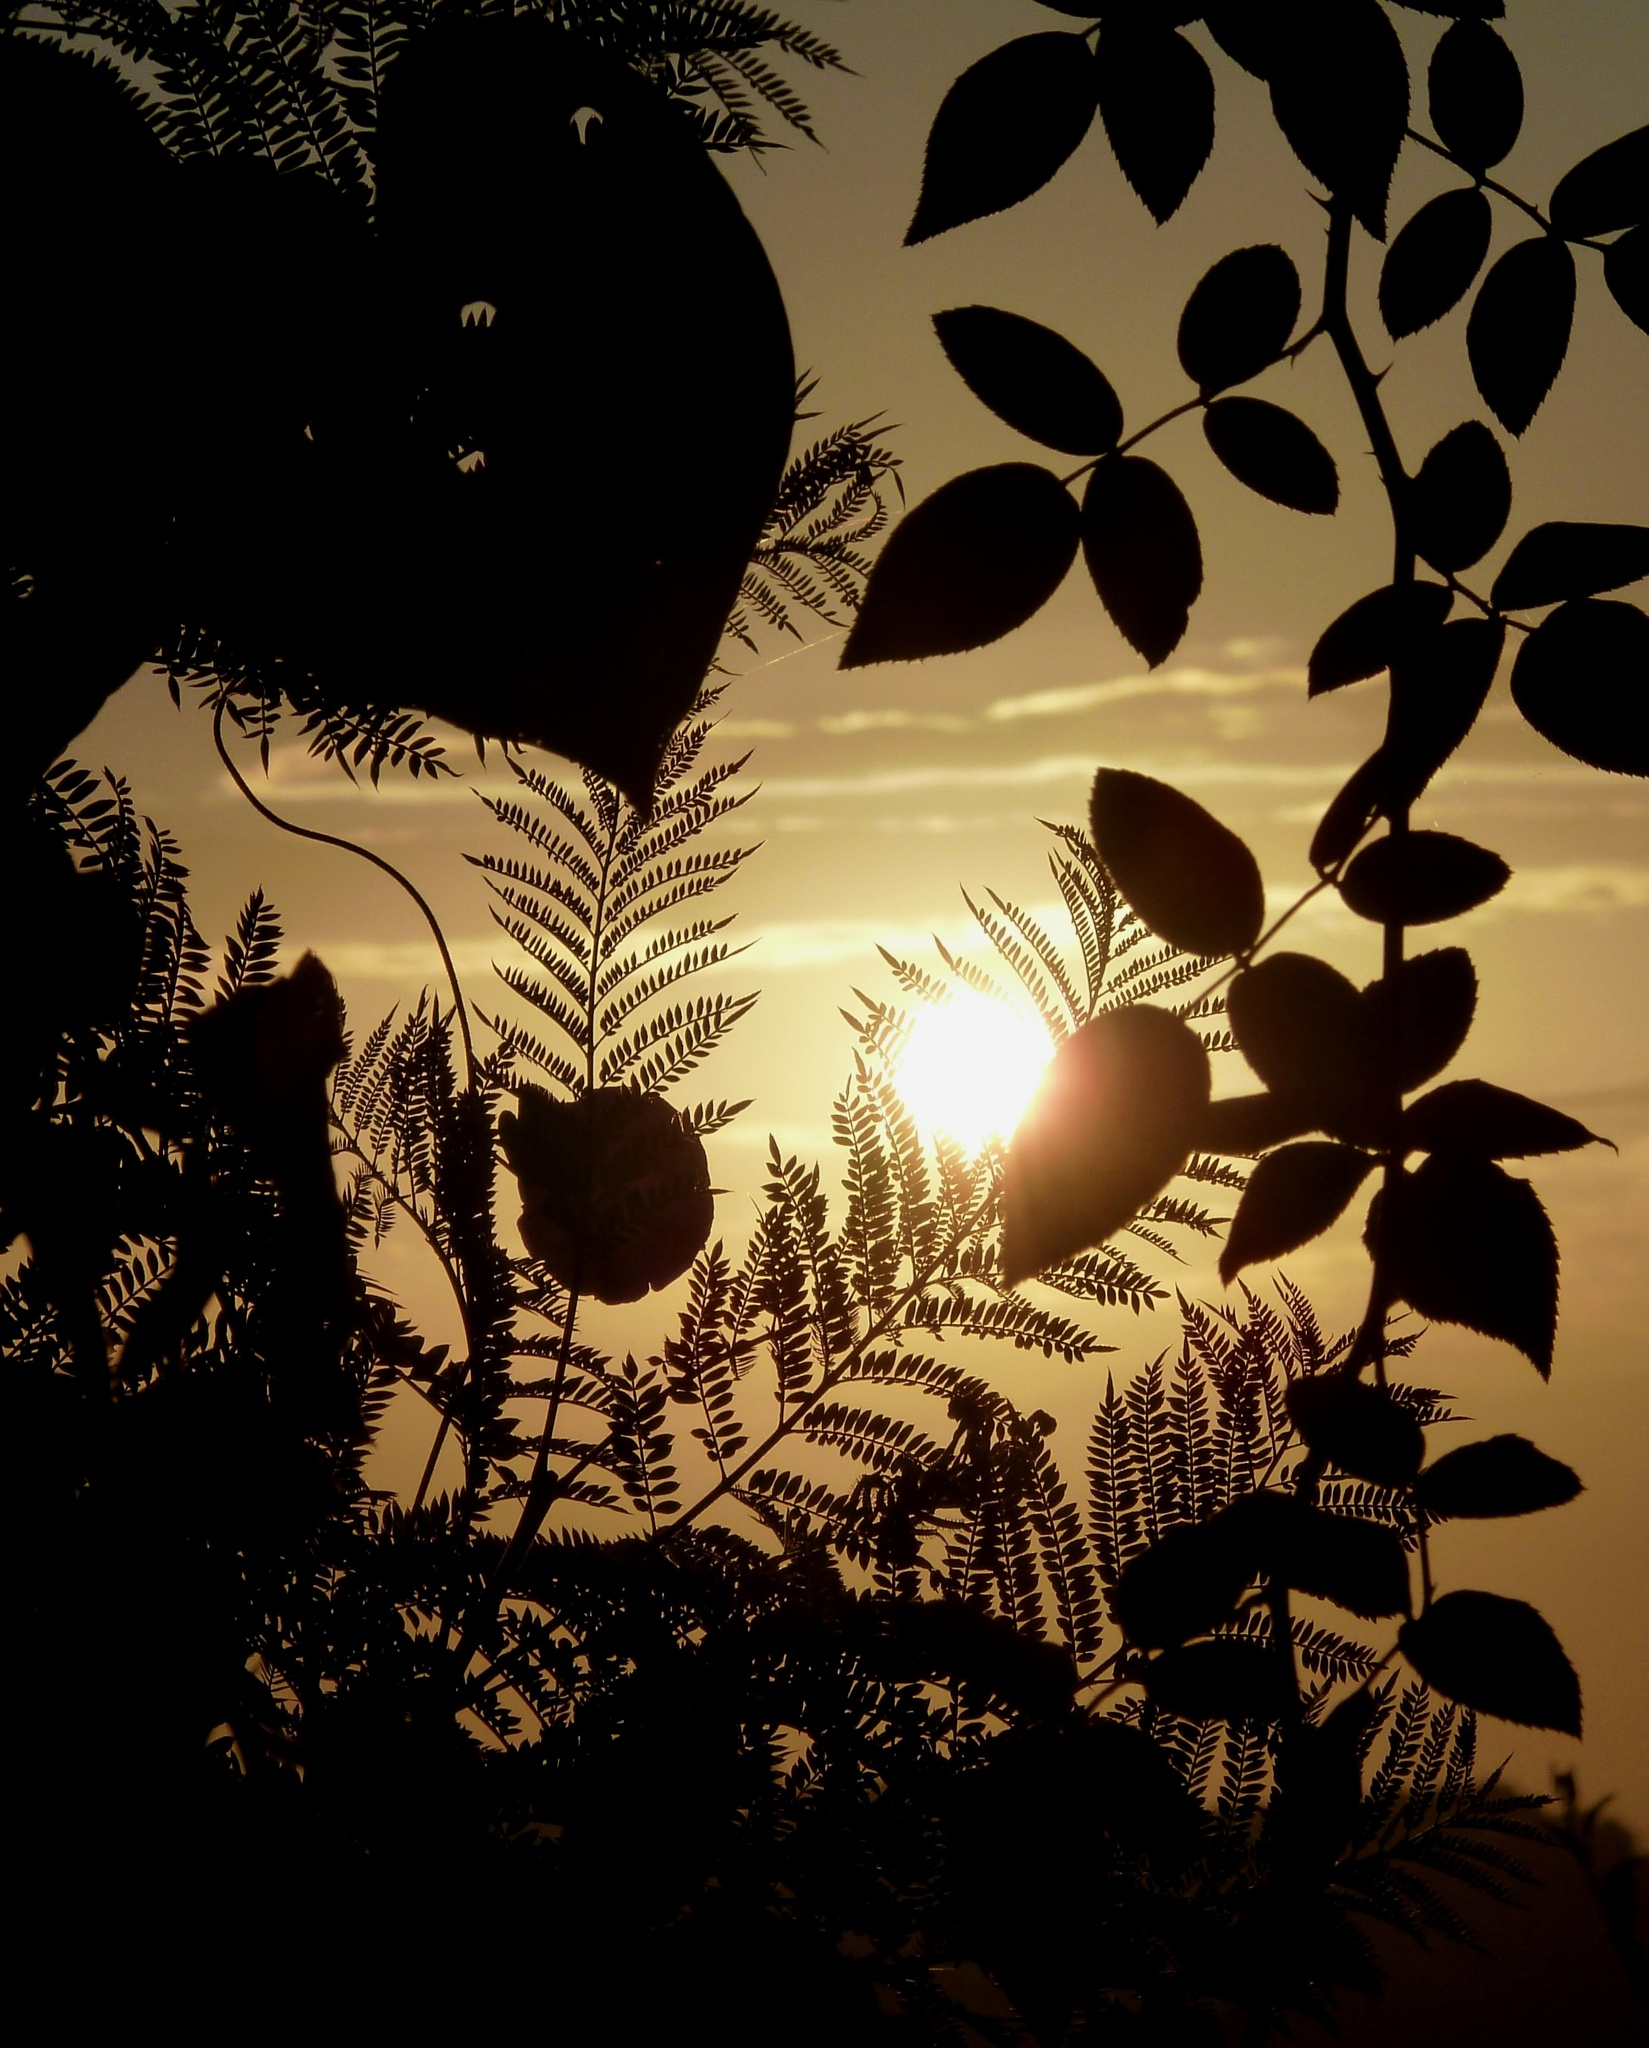 Leaf silhouettes and the rising sun. by Anton Agalbato